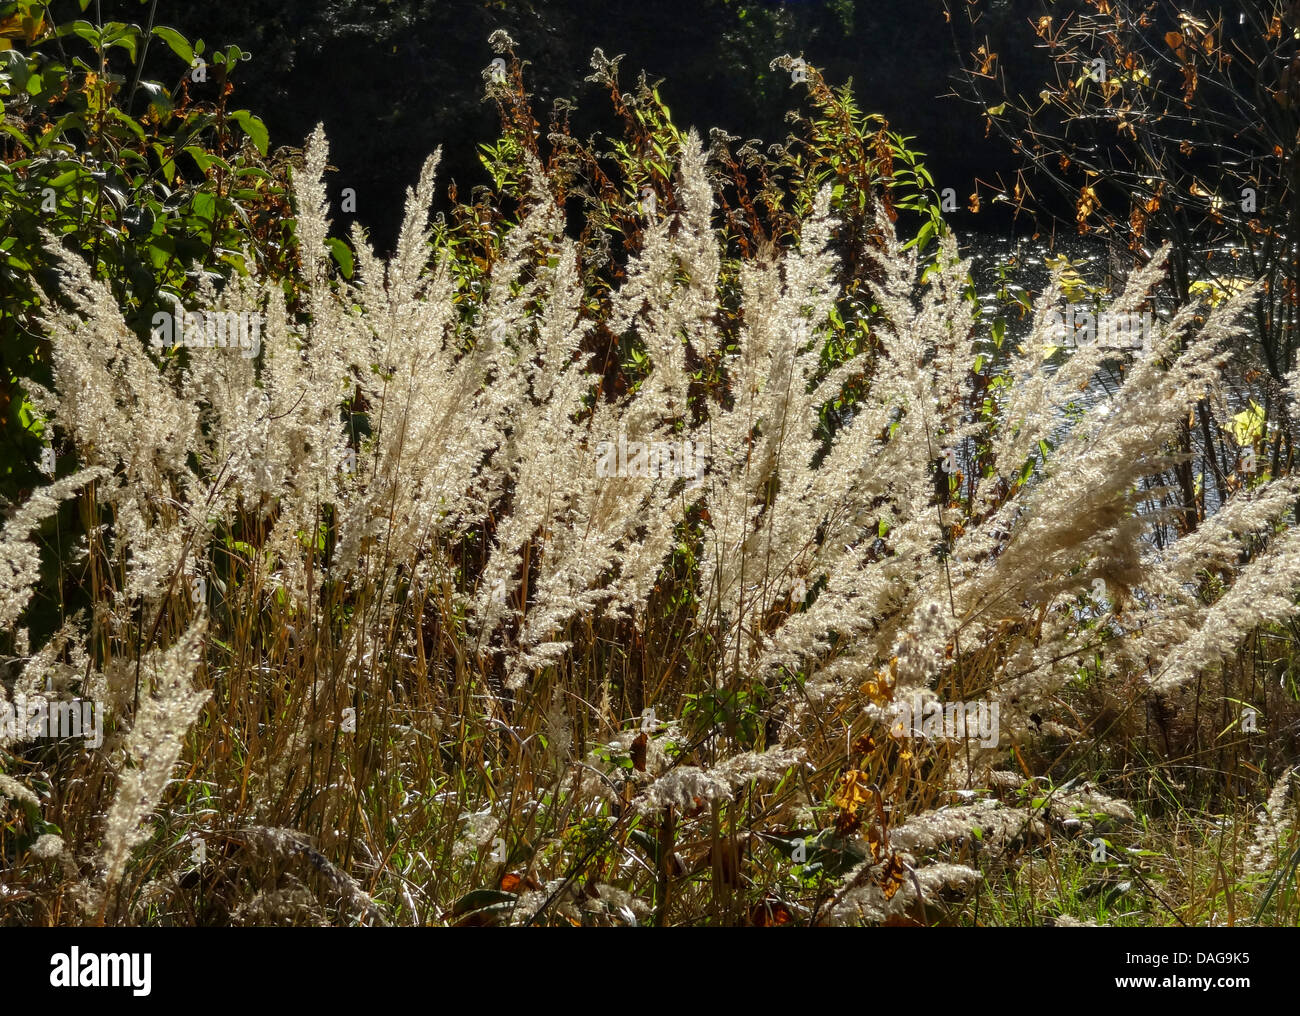 grass in autumn, Germany, North Rhine-Westphalia - Stock Image